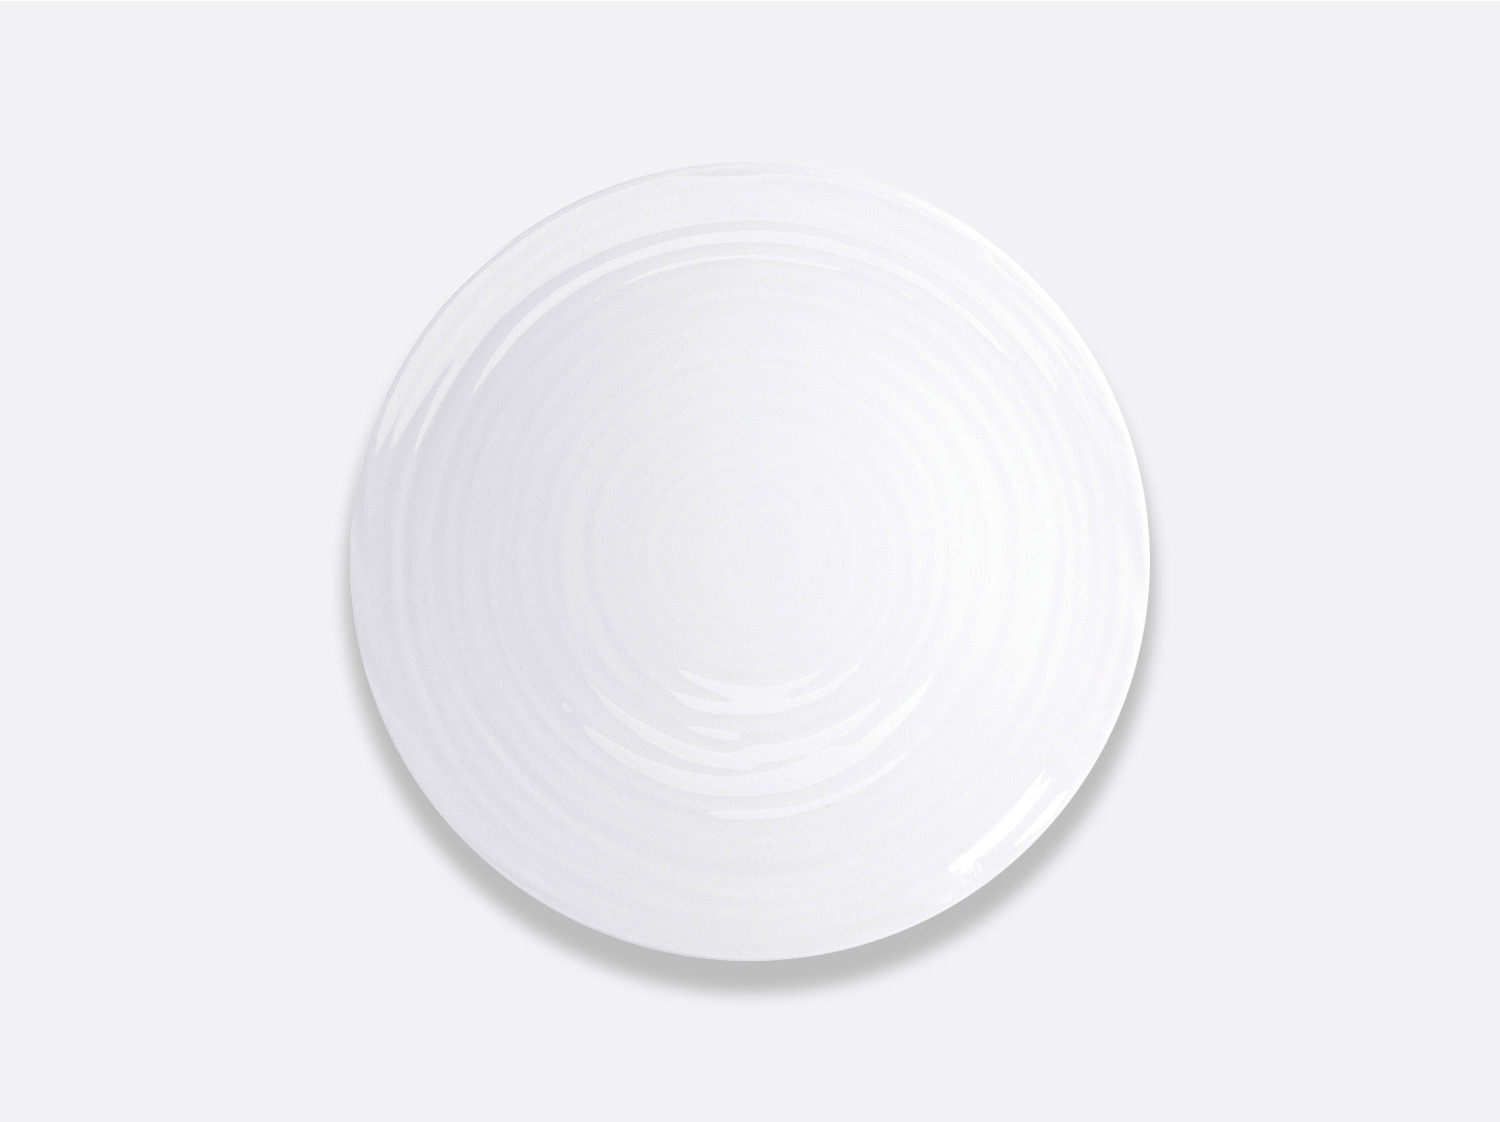 Assiette coupe 21,5 cm en porcelaine de la collection Origine Bernardaud